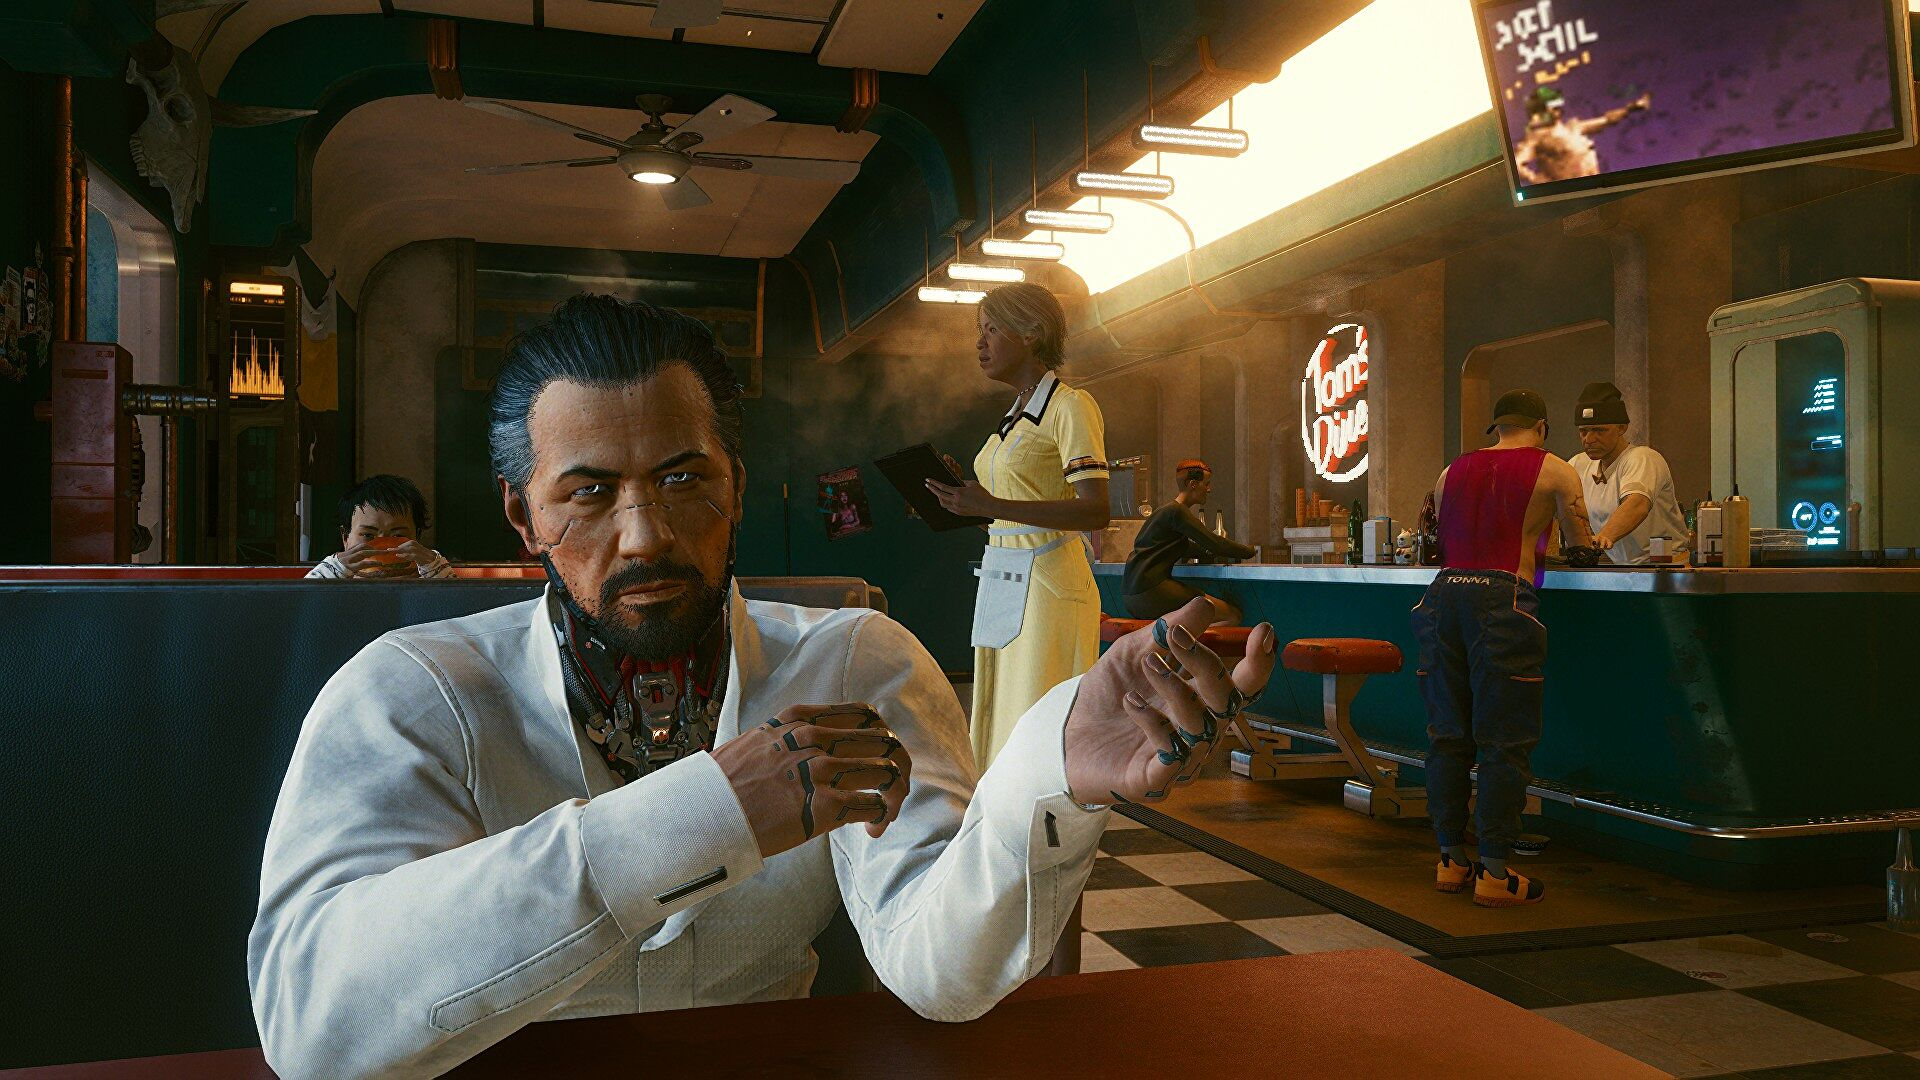 Cyberpunk 2077's v1.23 patch offers another round of quest fixes